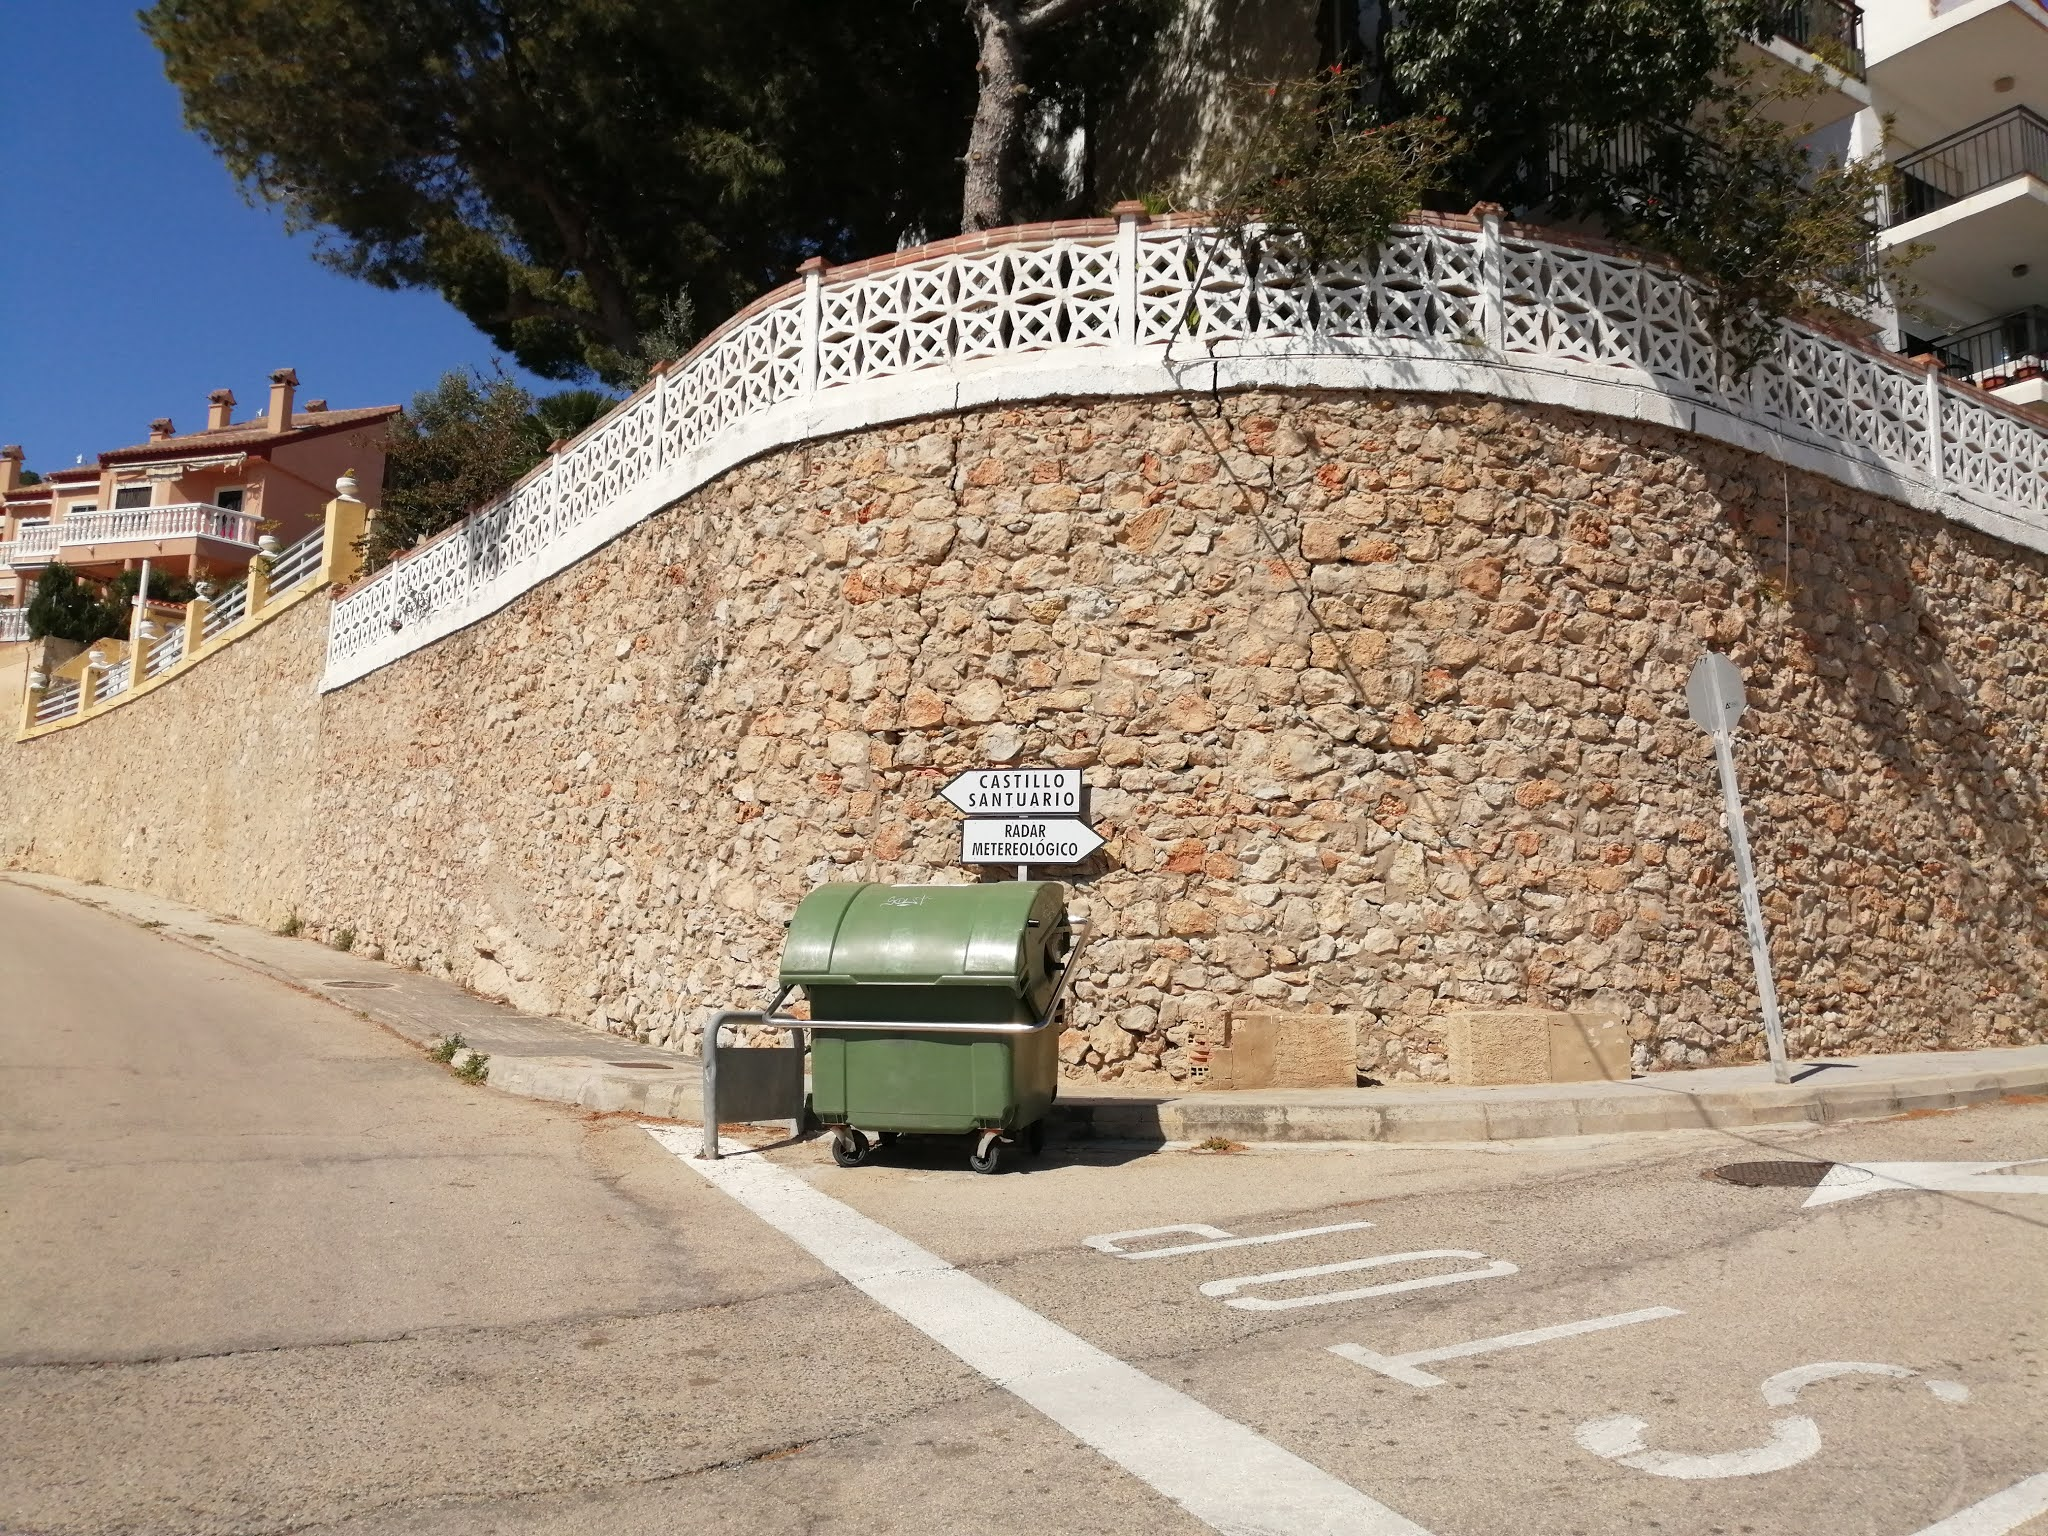 Junctions of the roads to Cullera Castle and la Bola, Valencia, Spain